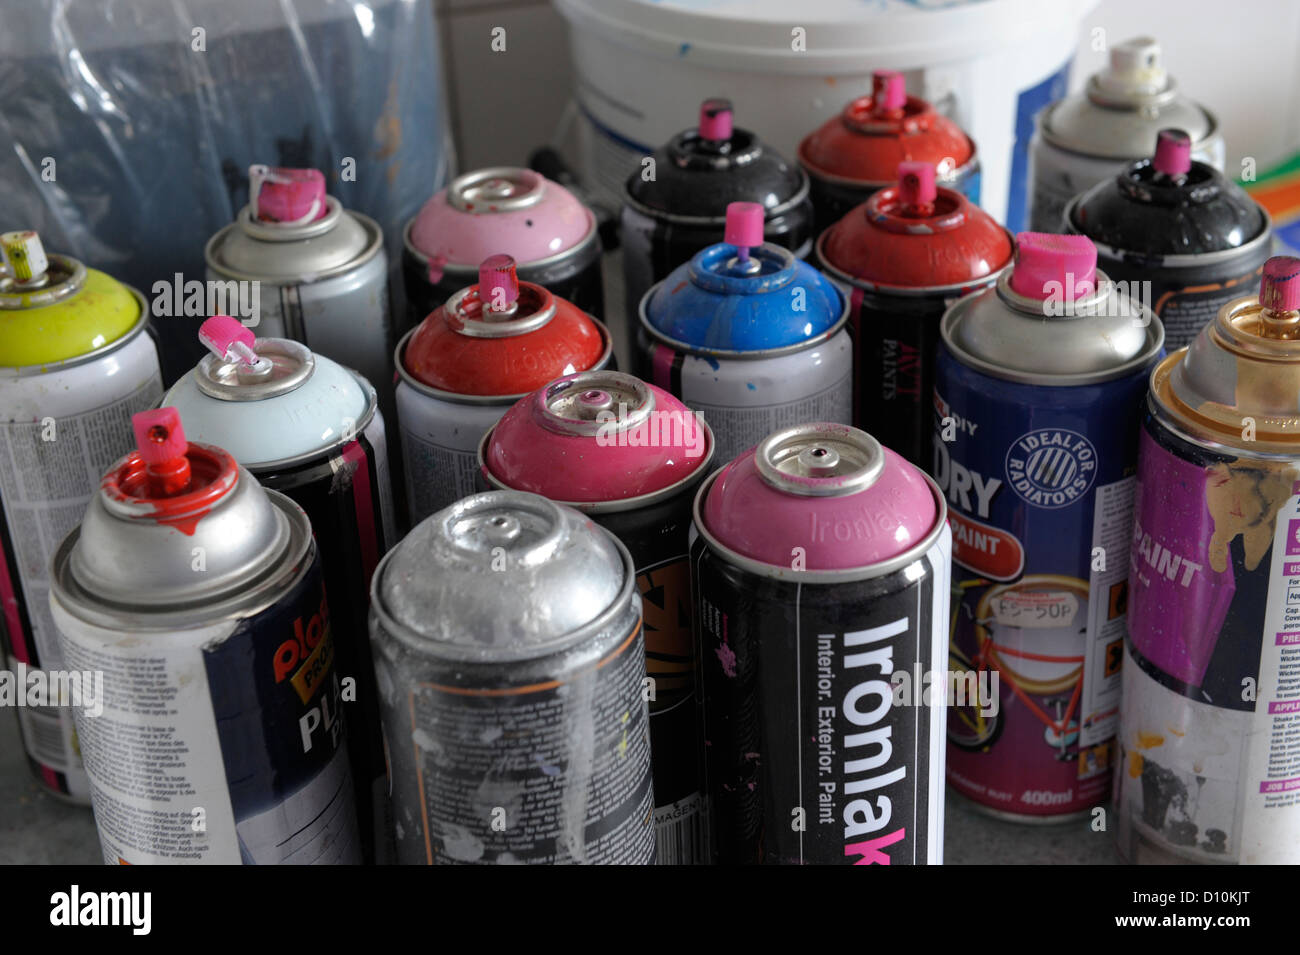 Cans of aerosol spray paint in an artists' studio - Stock Image